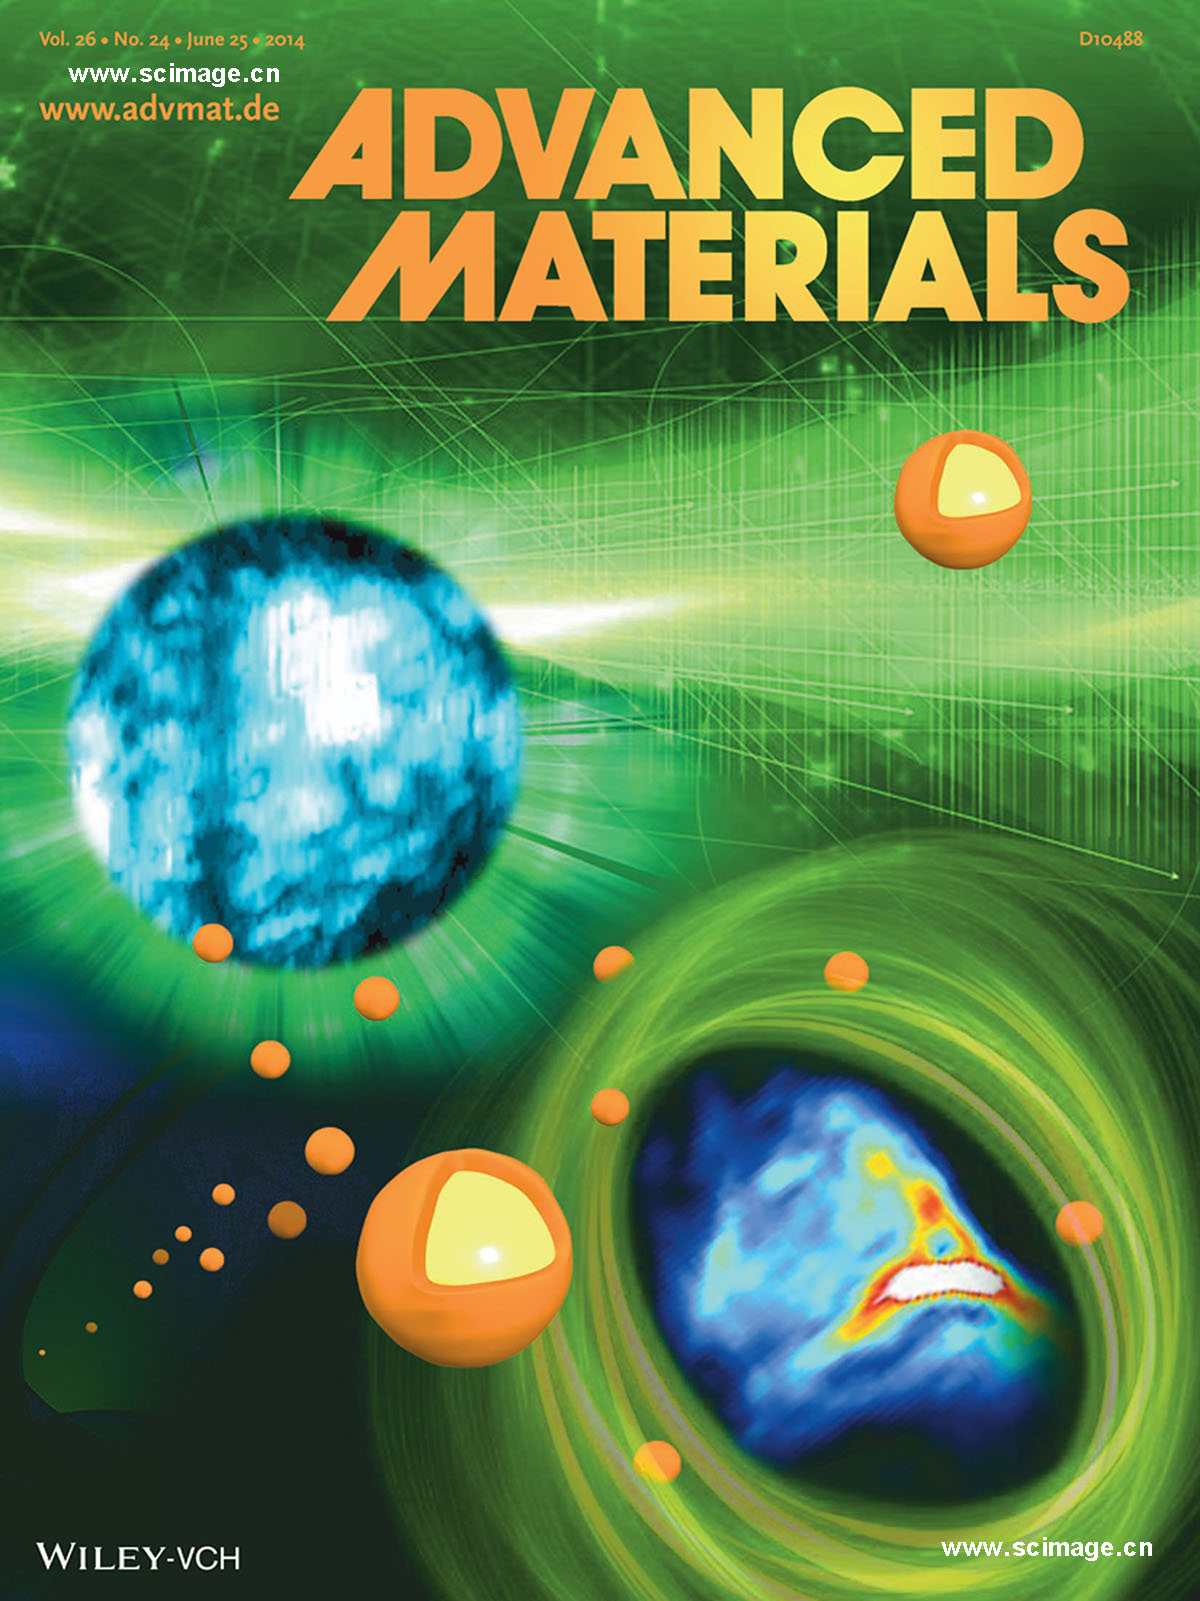 Photothermal Therapy: Multifunctional Fe5C2 Nanoparticles: A Targeted Theranostic Platform for Magnetic Resonance Imaging and Photoacoustic Tomography-Guided Photothermal Therapy (Adv. Mater. 24/2014) (page 4187)